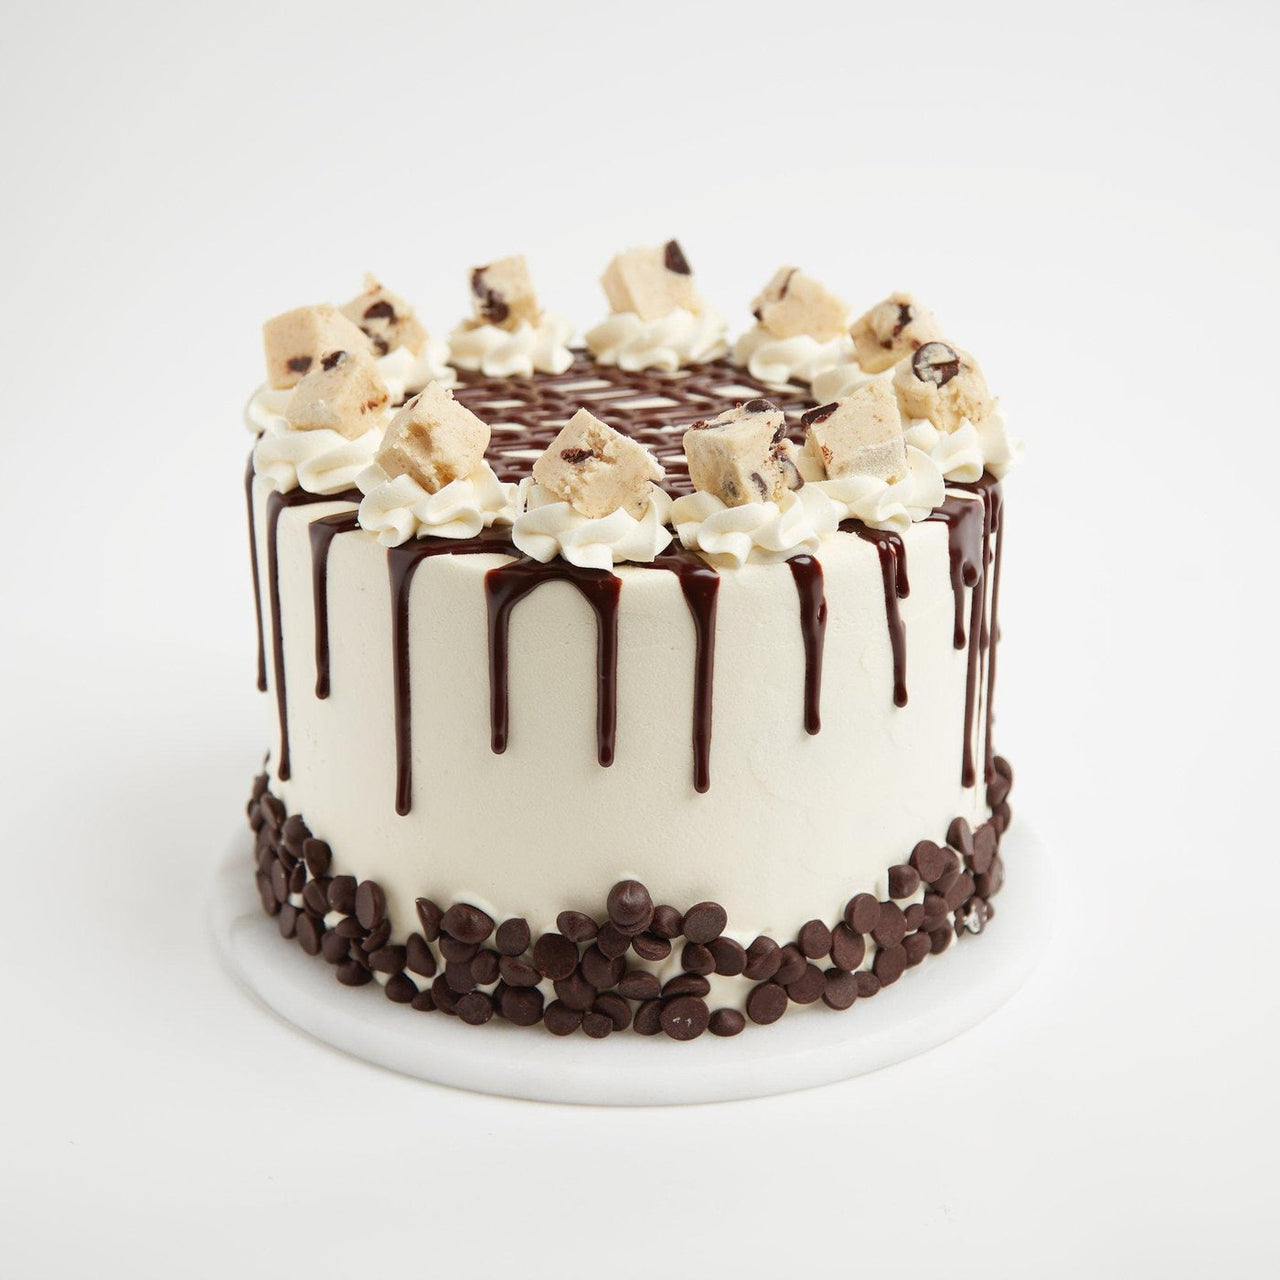 Cookie Dough Cake by Crumbs & Doilies